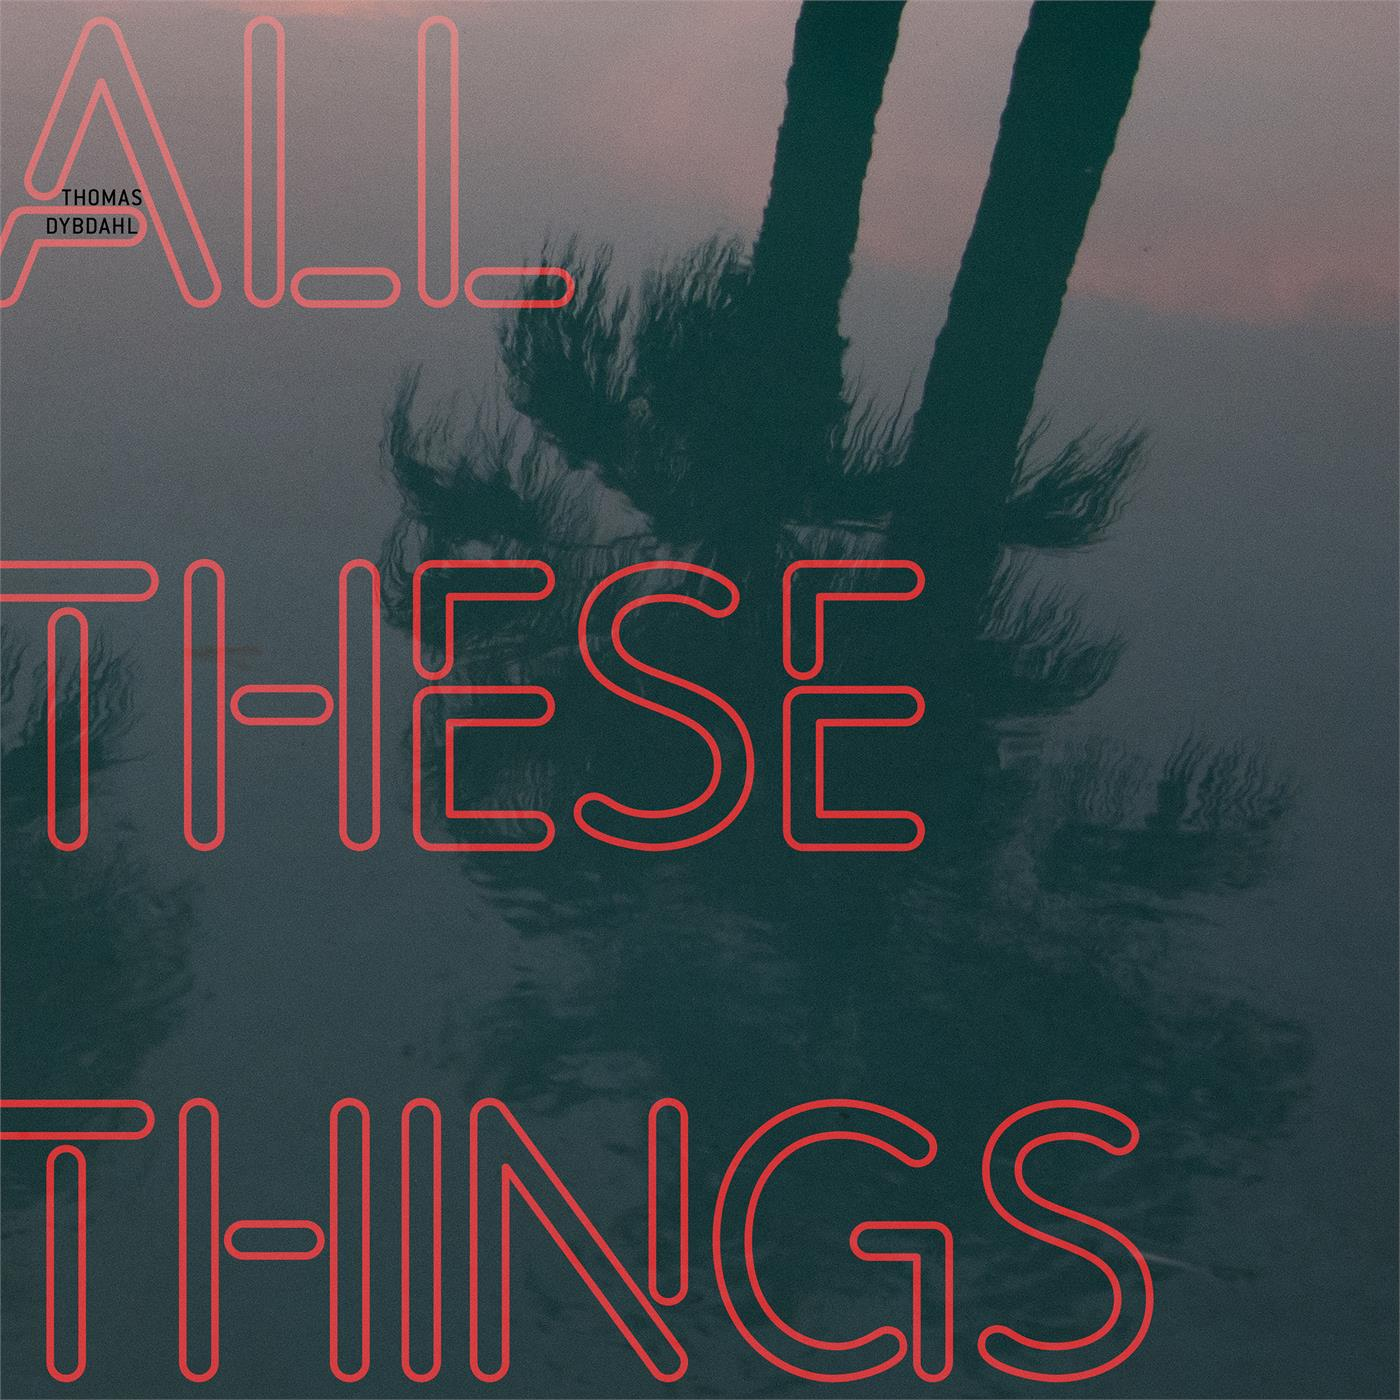 7090011904384 Petroleum  Thomas Dybdahl All These Things (LP)